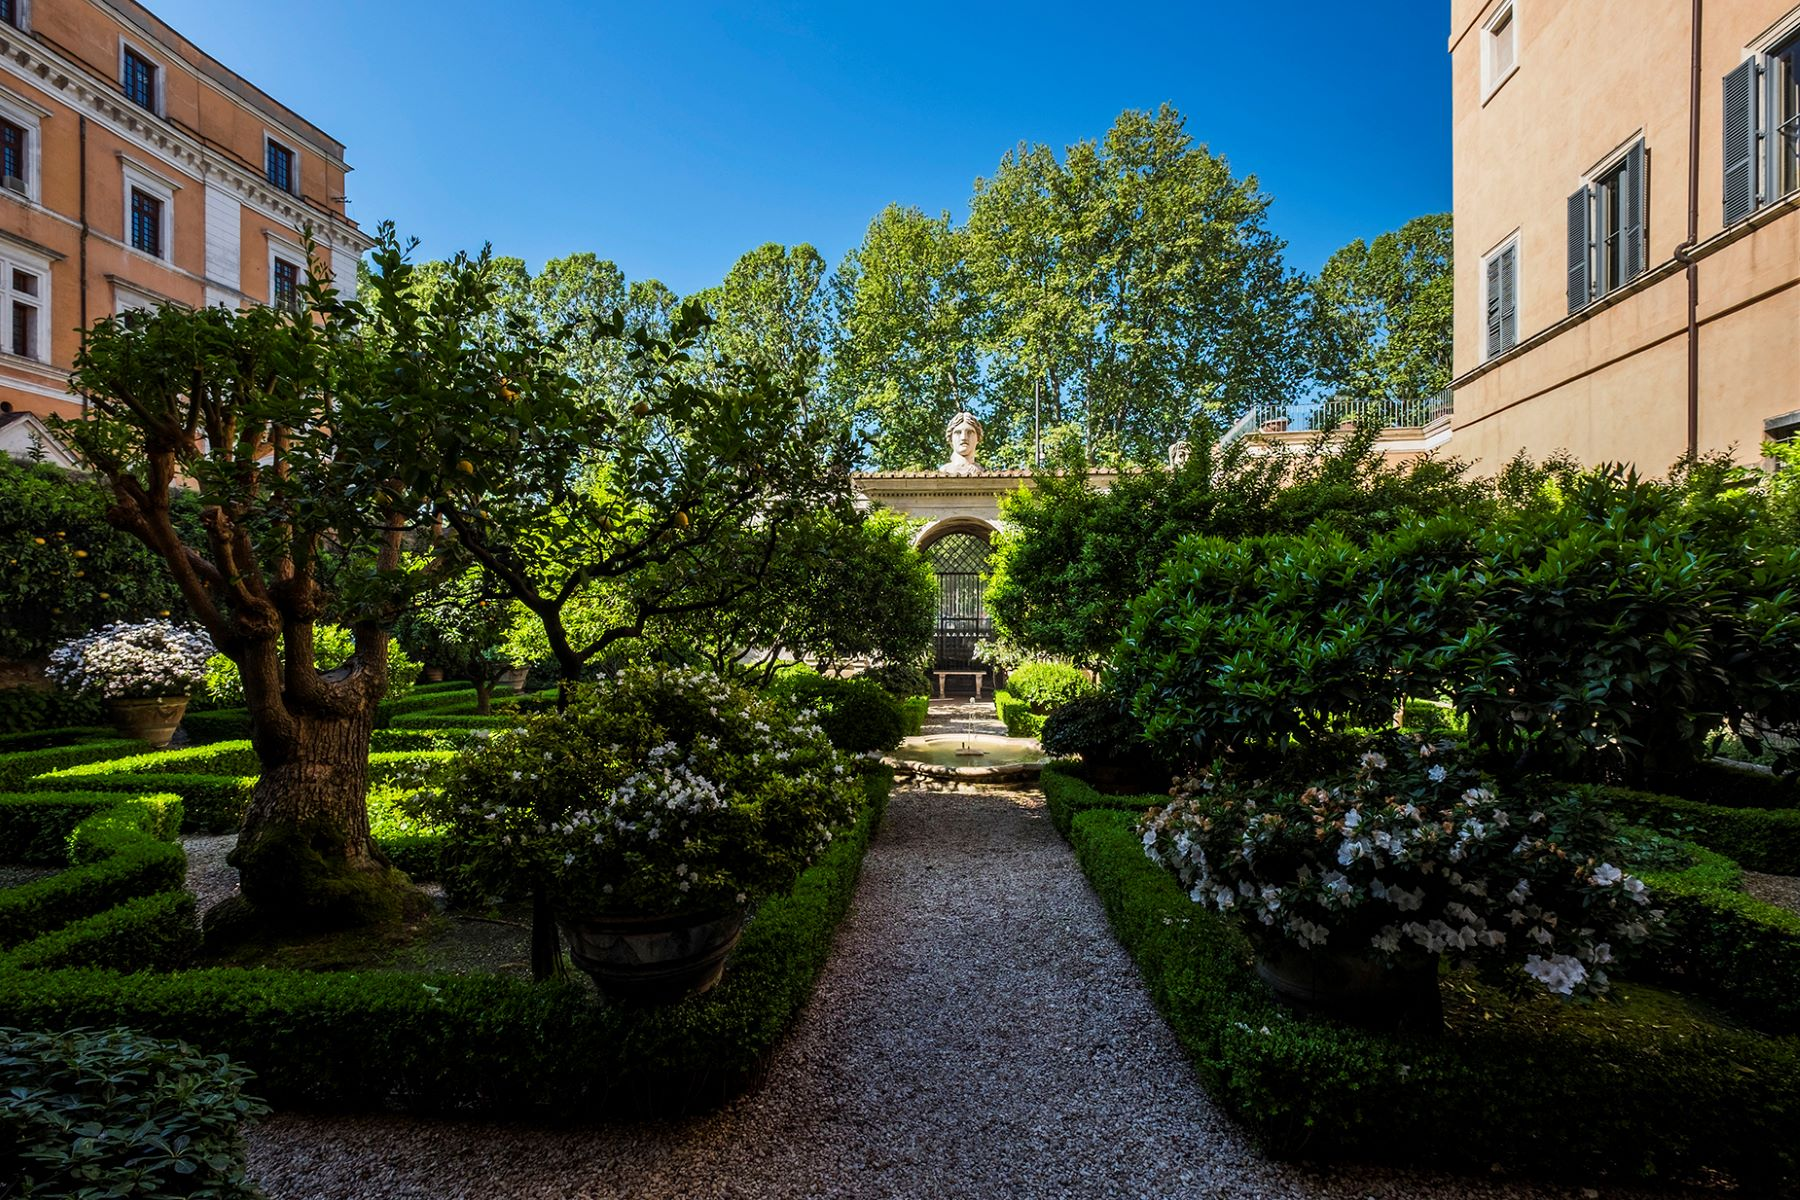 Single Family Home for Sale at Palazzo Sacchetti, a pearl of the late Reinassance in the heart of Rome Via Giulia Rome, Rome 00186 Italy